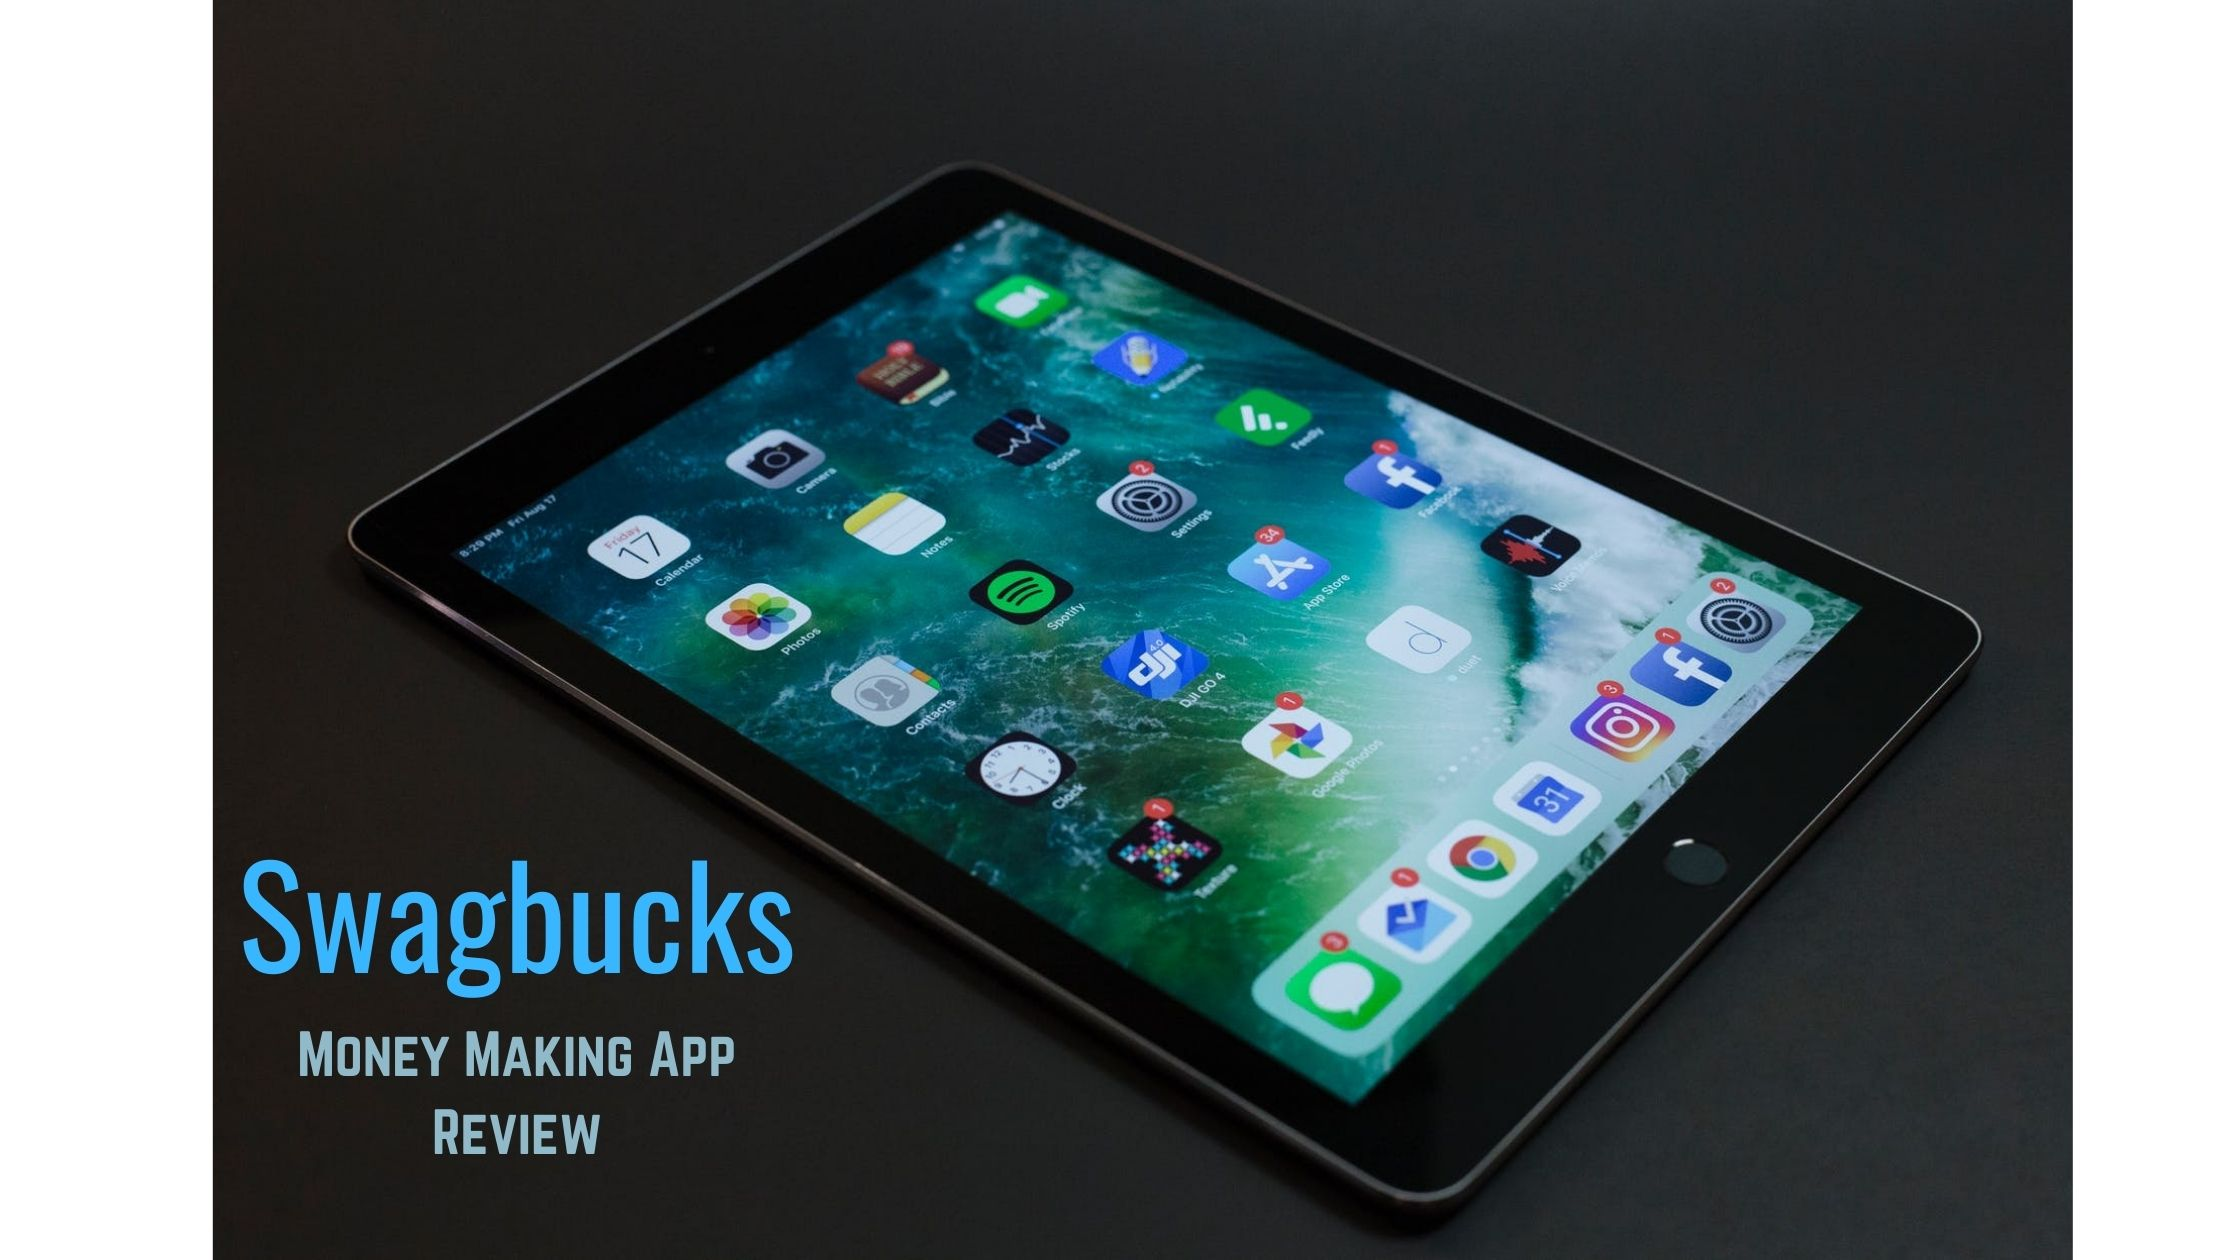 Swagbucks Money Making App Review